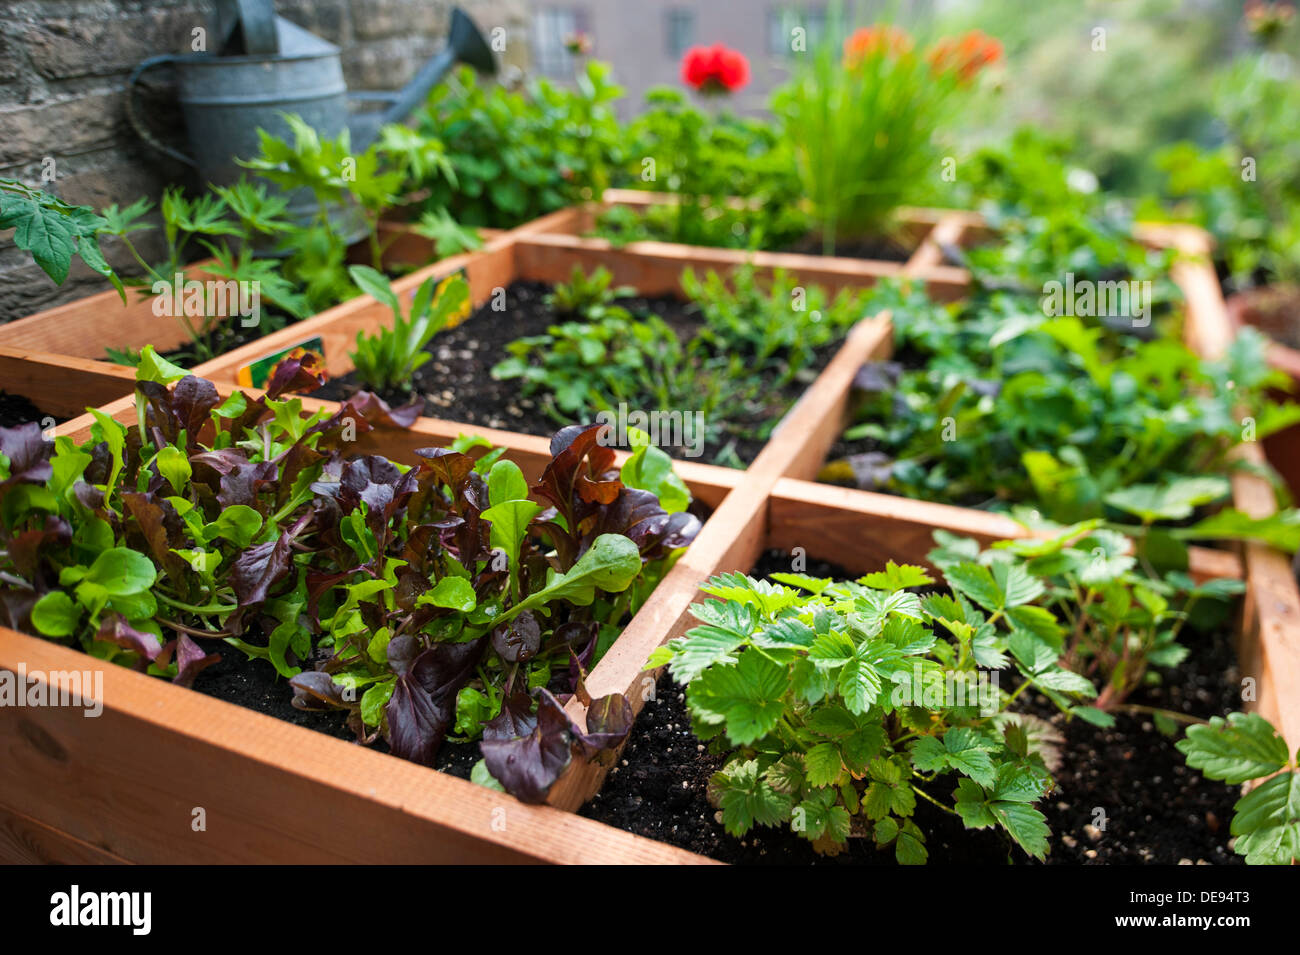 Square Foot Gardening By Planting Flowers, Herbs And Vegetables In Wooden  Box On Balcony